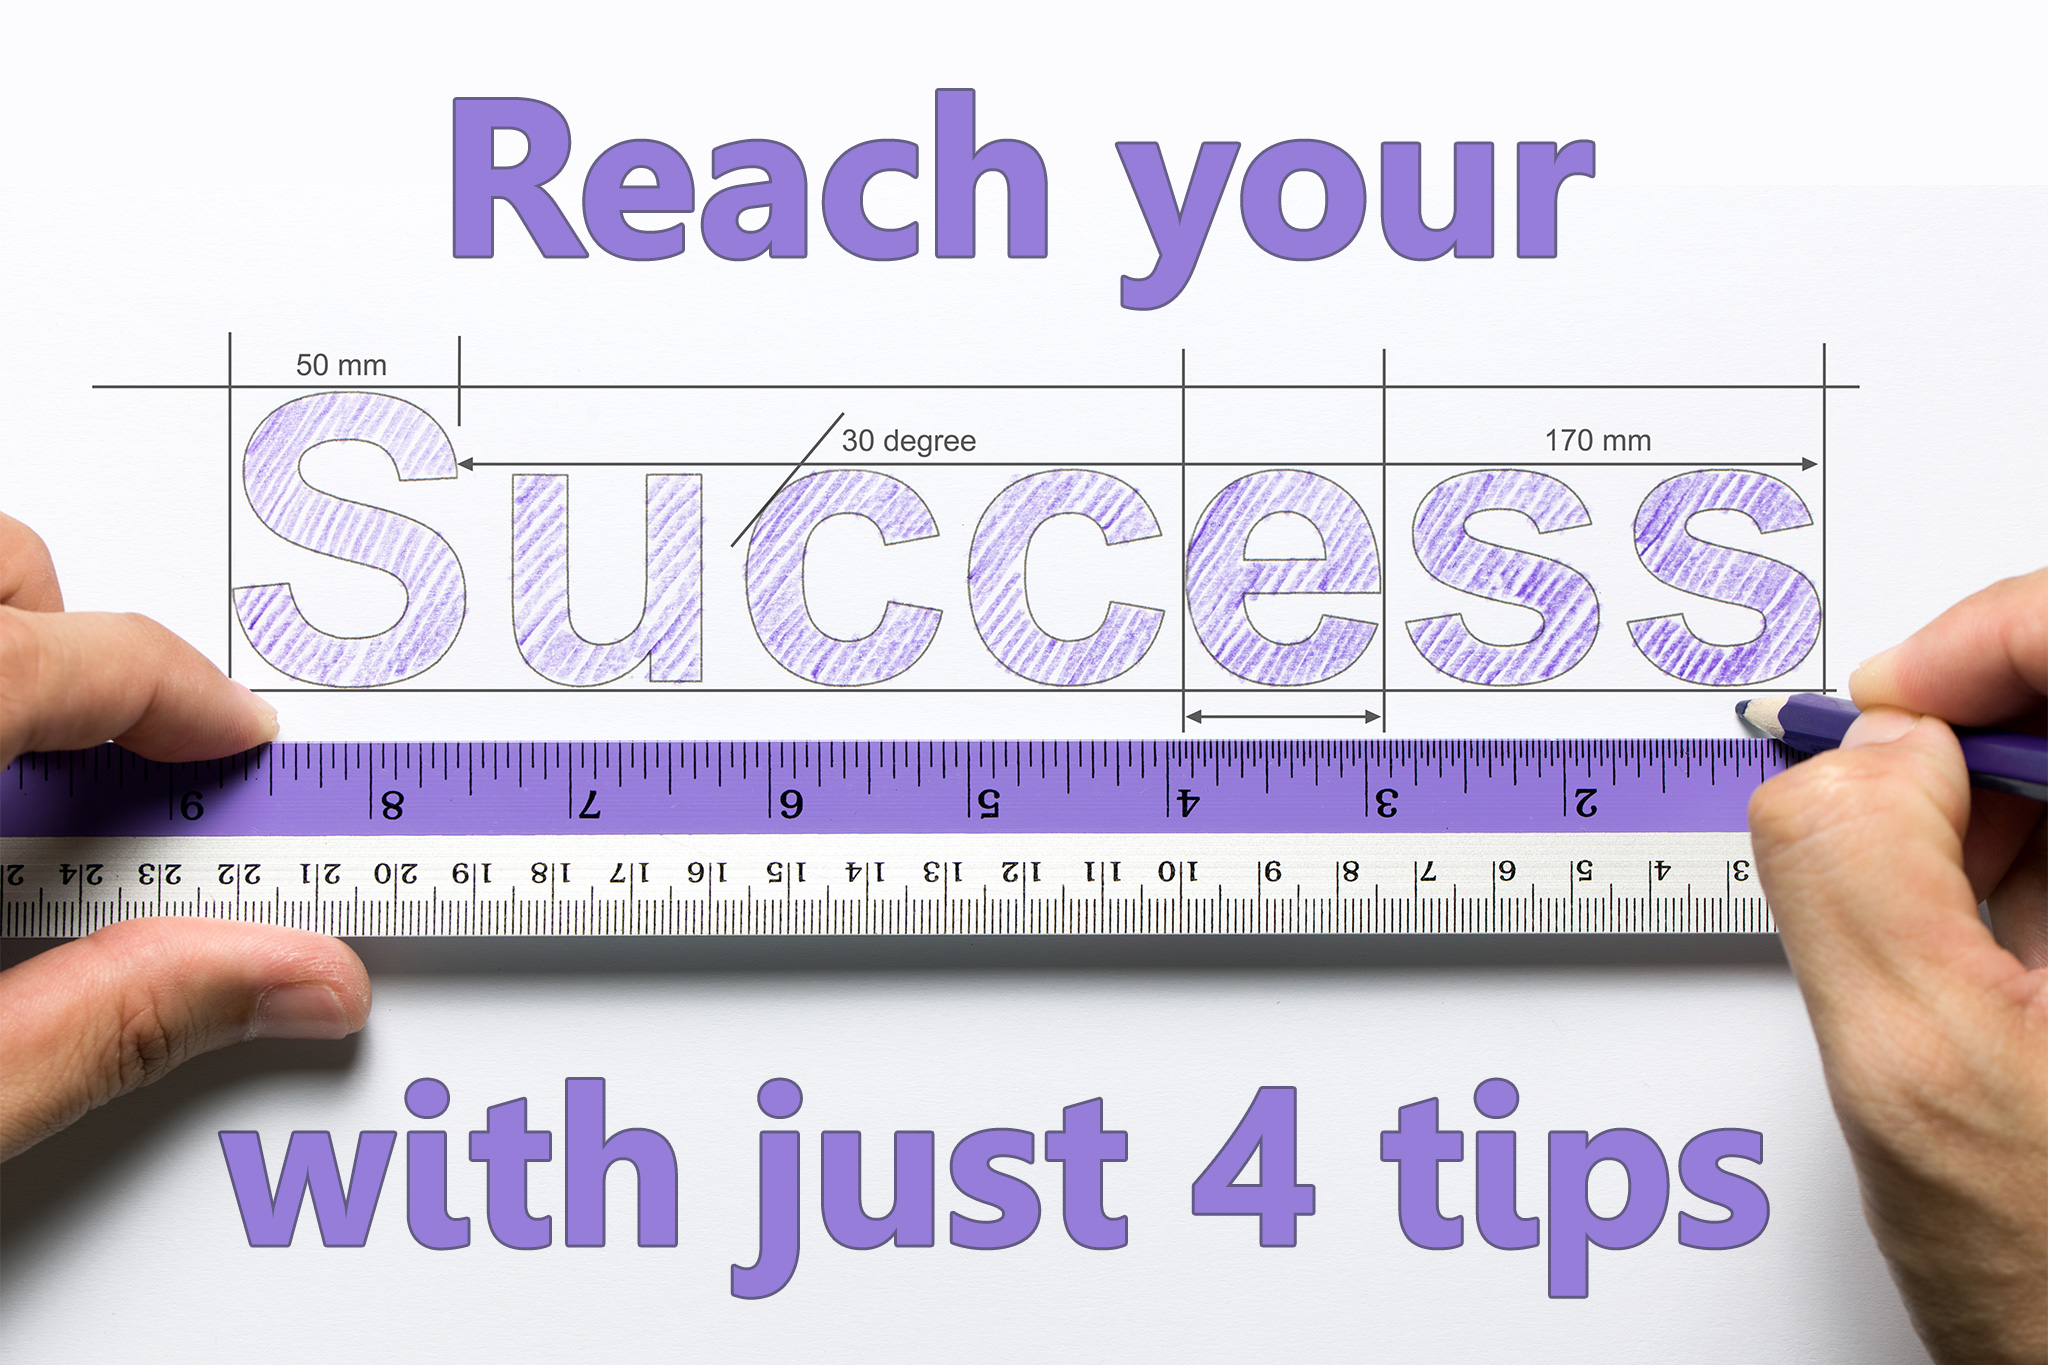 Reach Your Success With Just 4 Tips